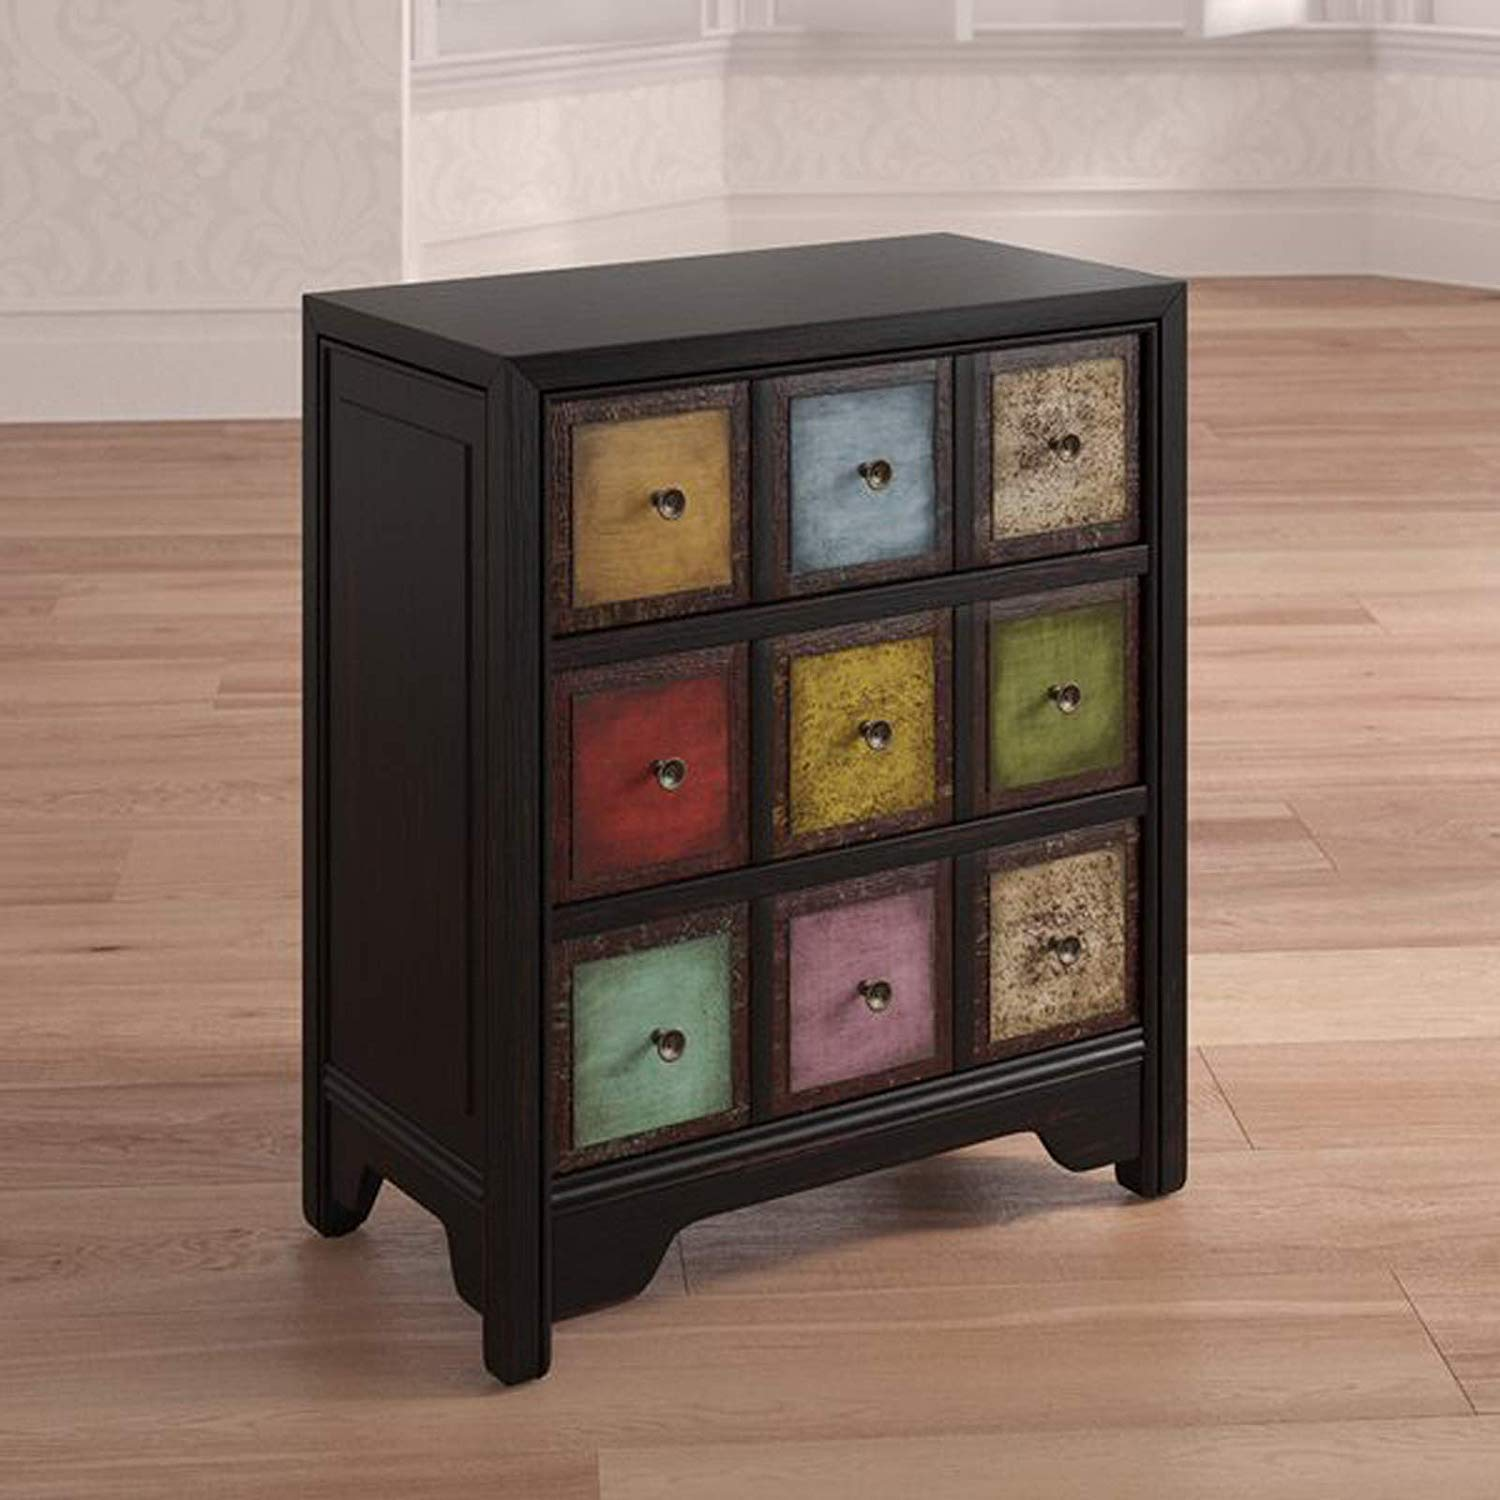 Solid Wood 3 Drawer Dresser - Contemporary Chest Drawers Clothes Storage Cabinet - Bedroom Dressing Organizer - Traditional Style Accent Cabinet